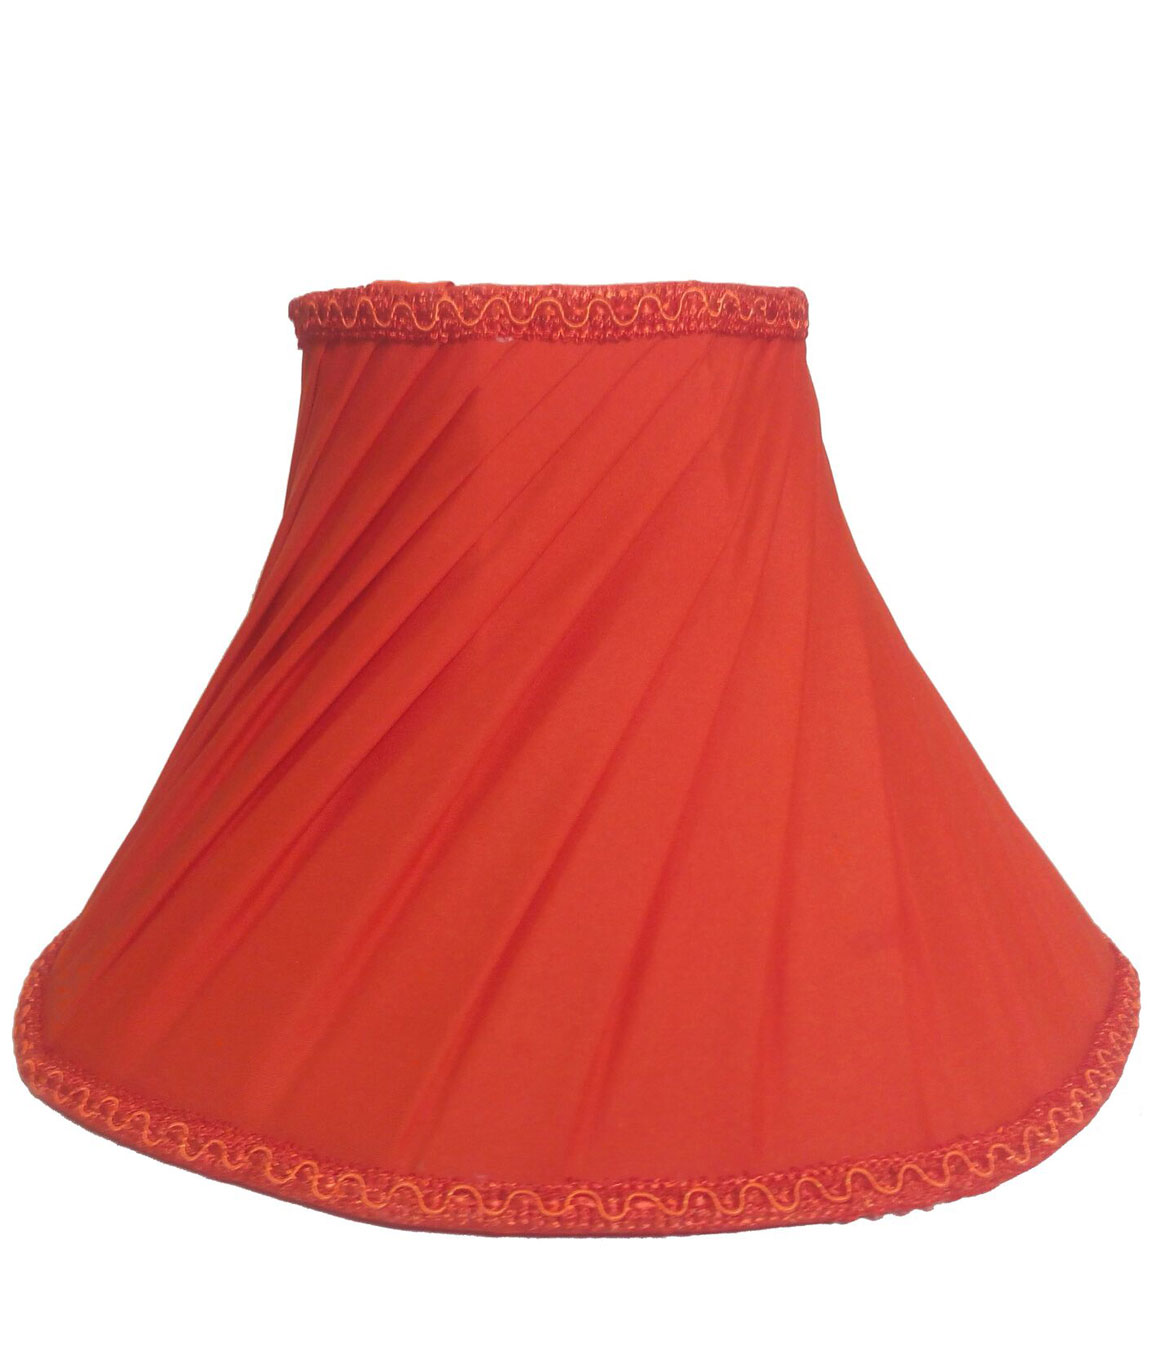 RDC 10 Inches Round Slanting Pleated Orange with Lace Border Lamp Shade for Table Lamp